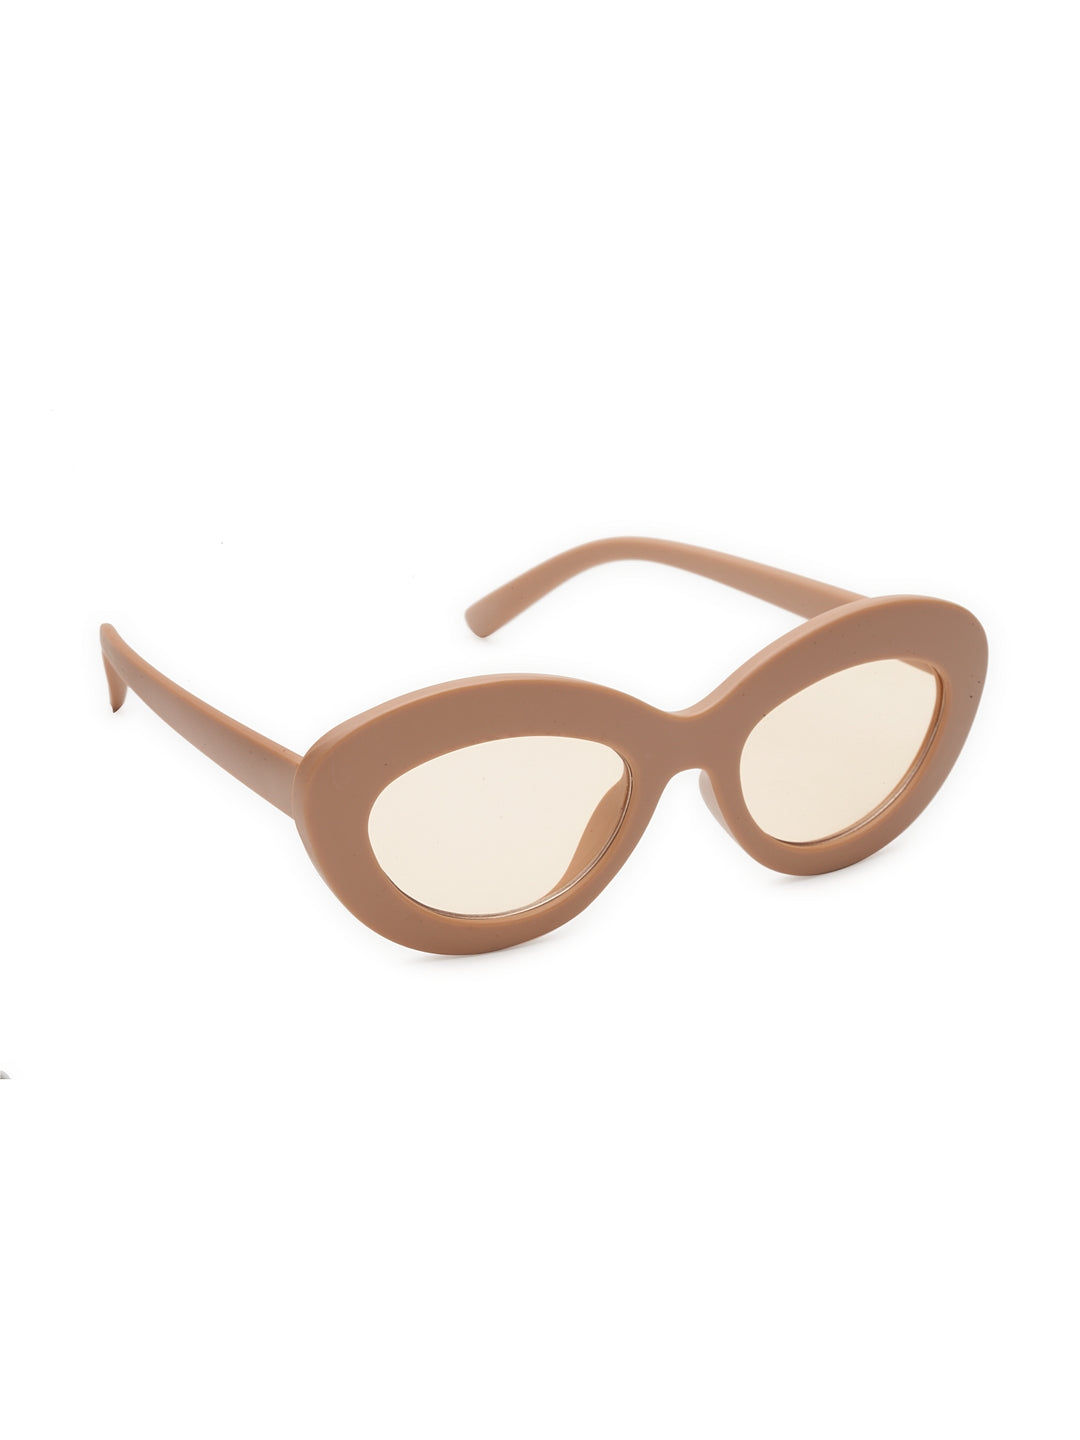 Avant-Garde Paris Cateye Fashion Sunglasses